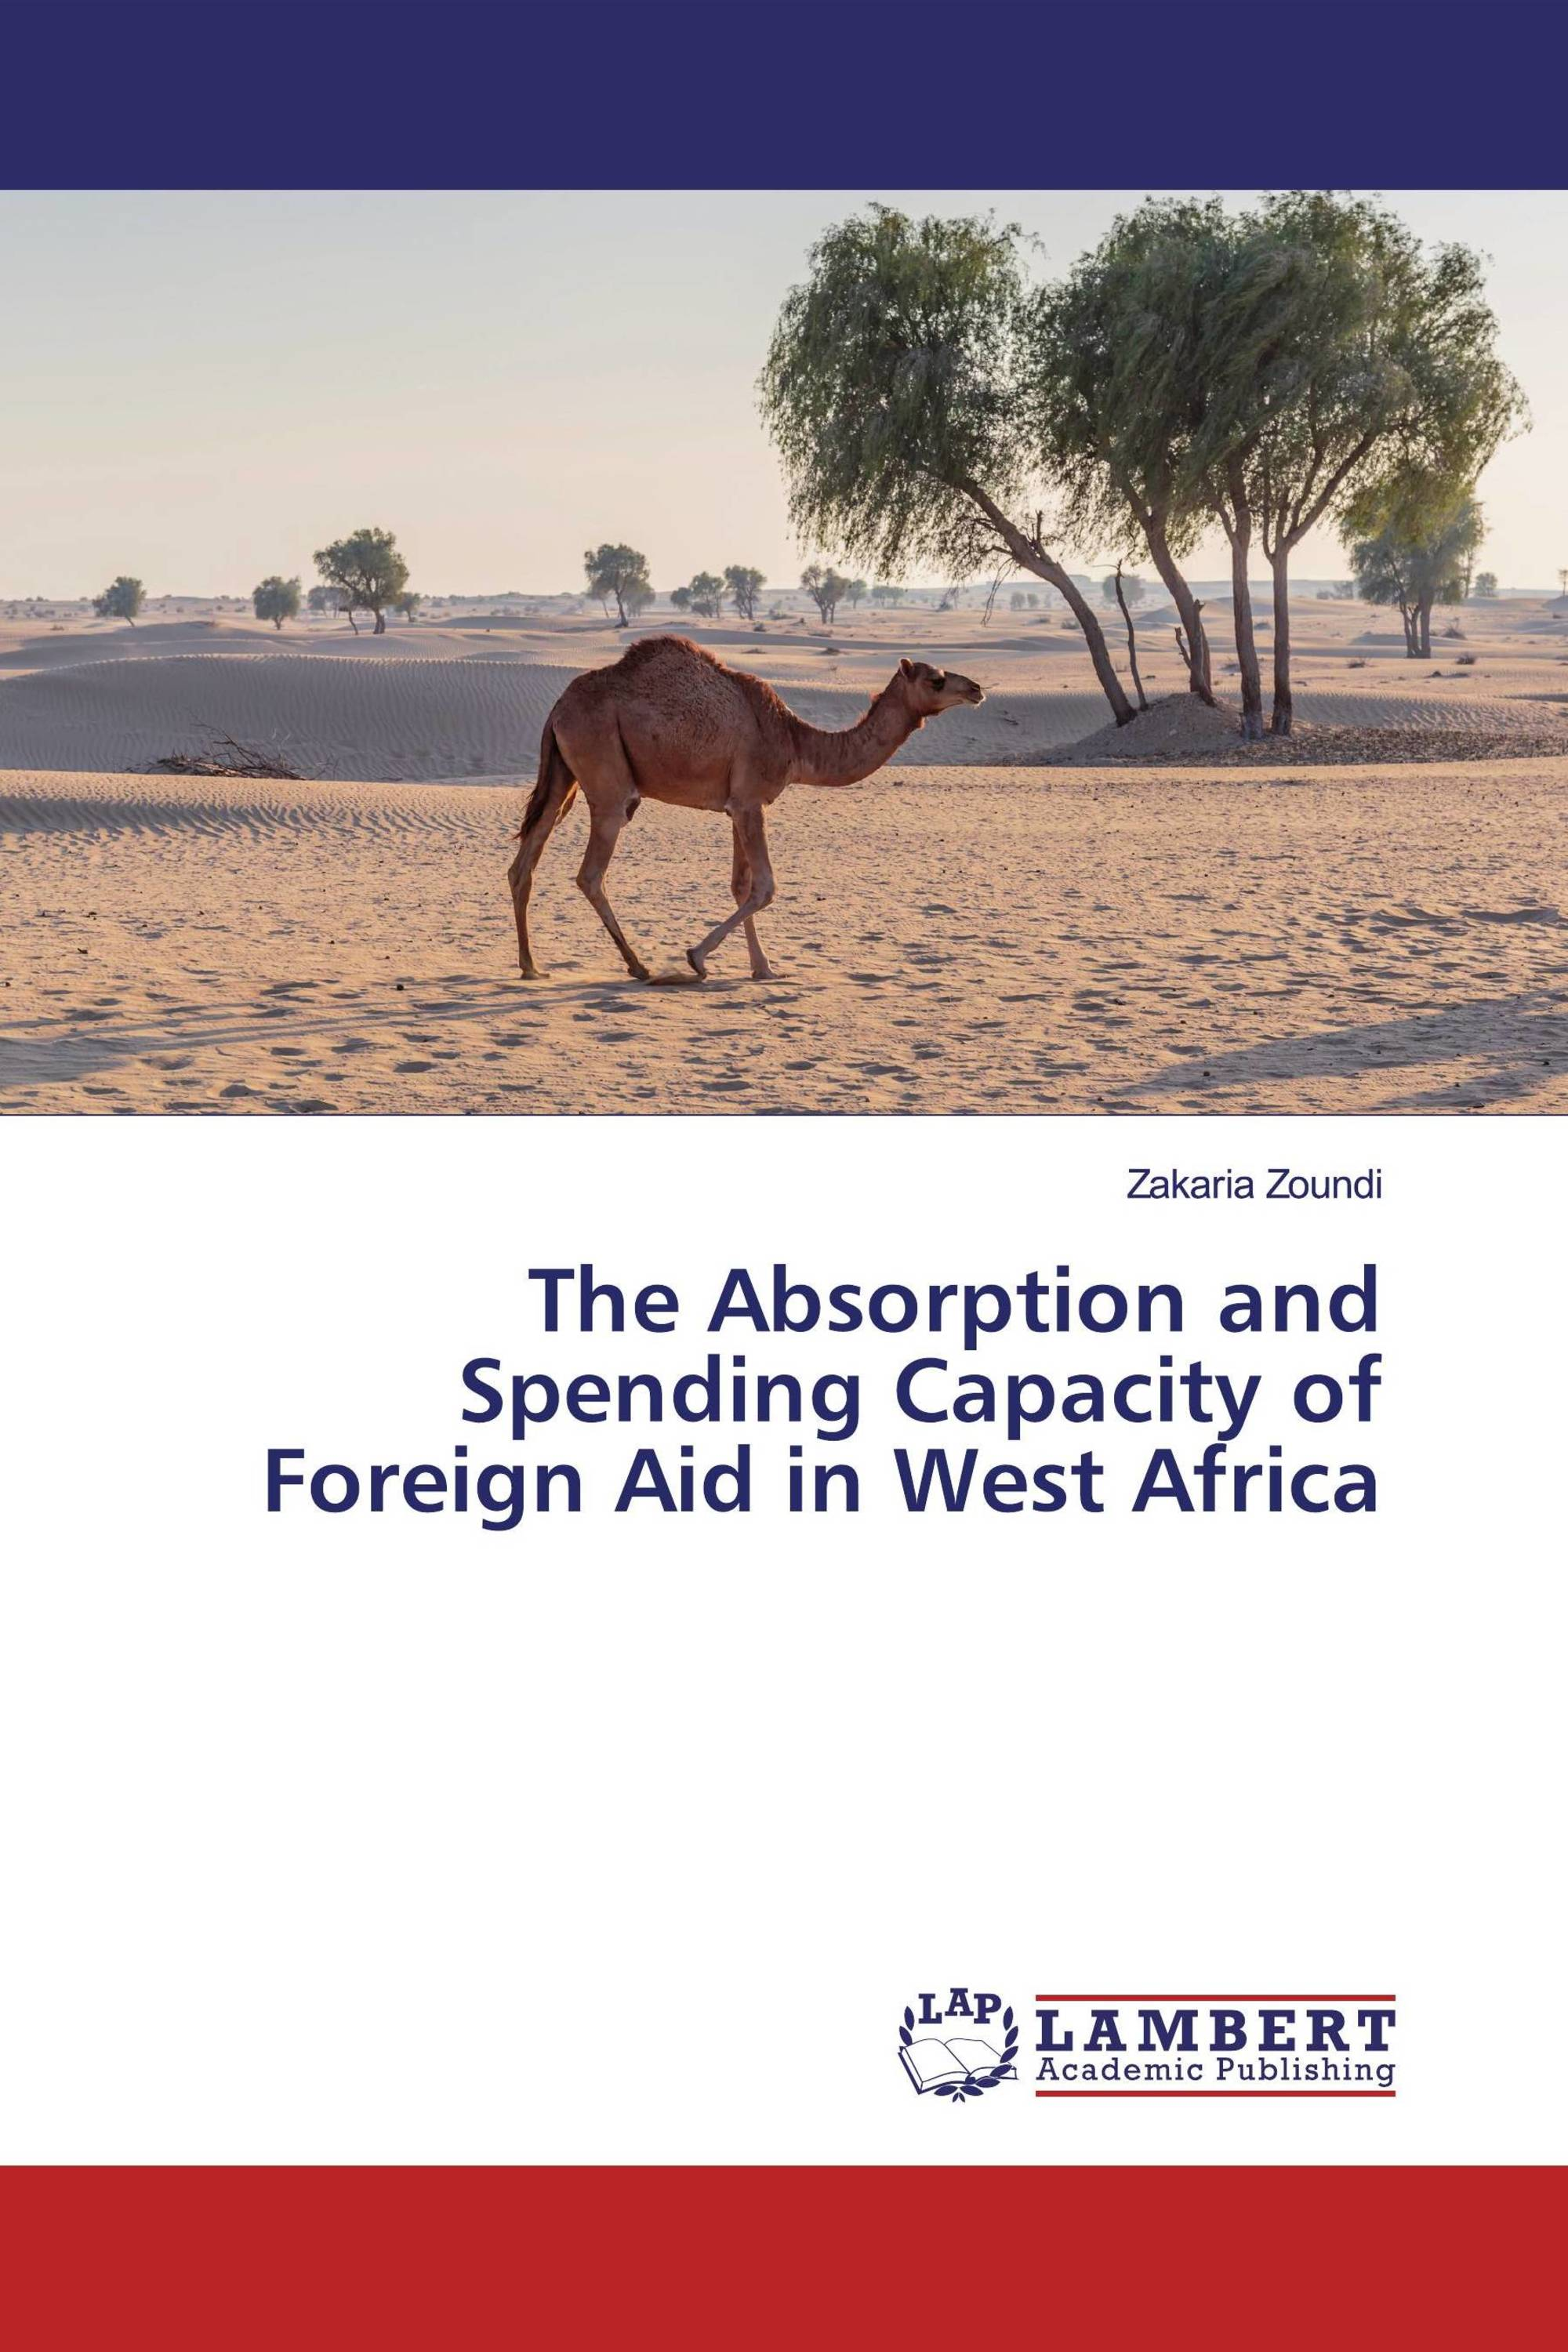 The Absorption and Spending Capacity of Foreign Aid in West Africa